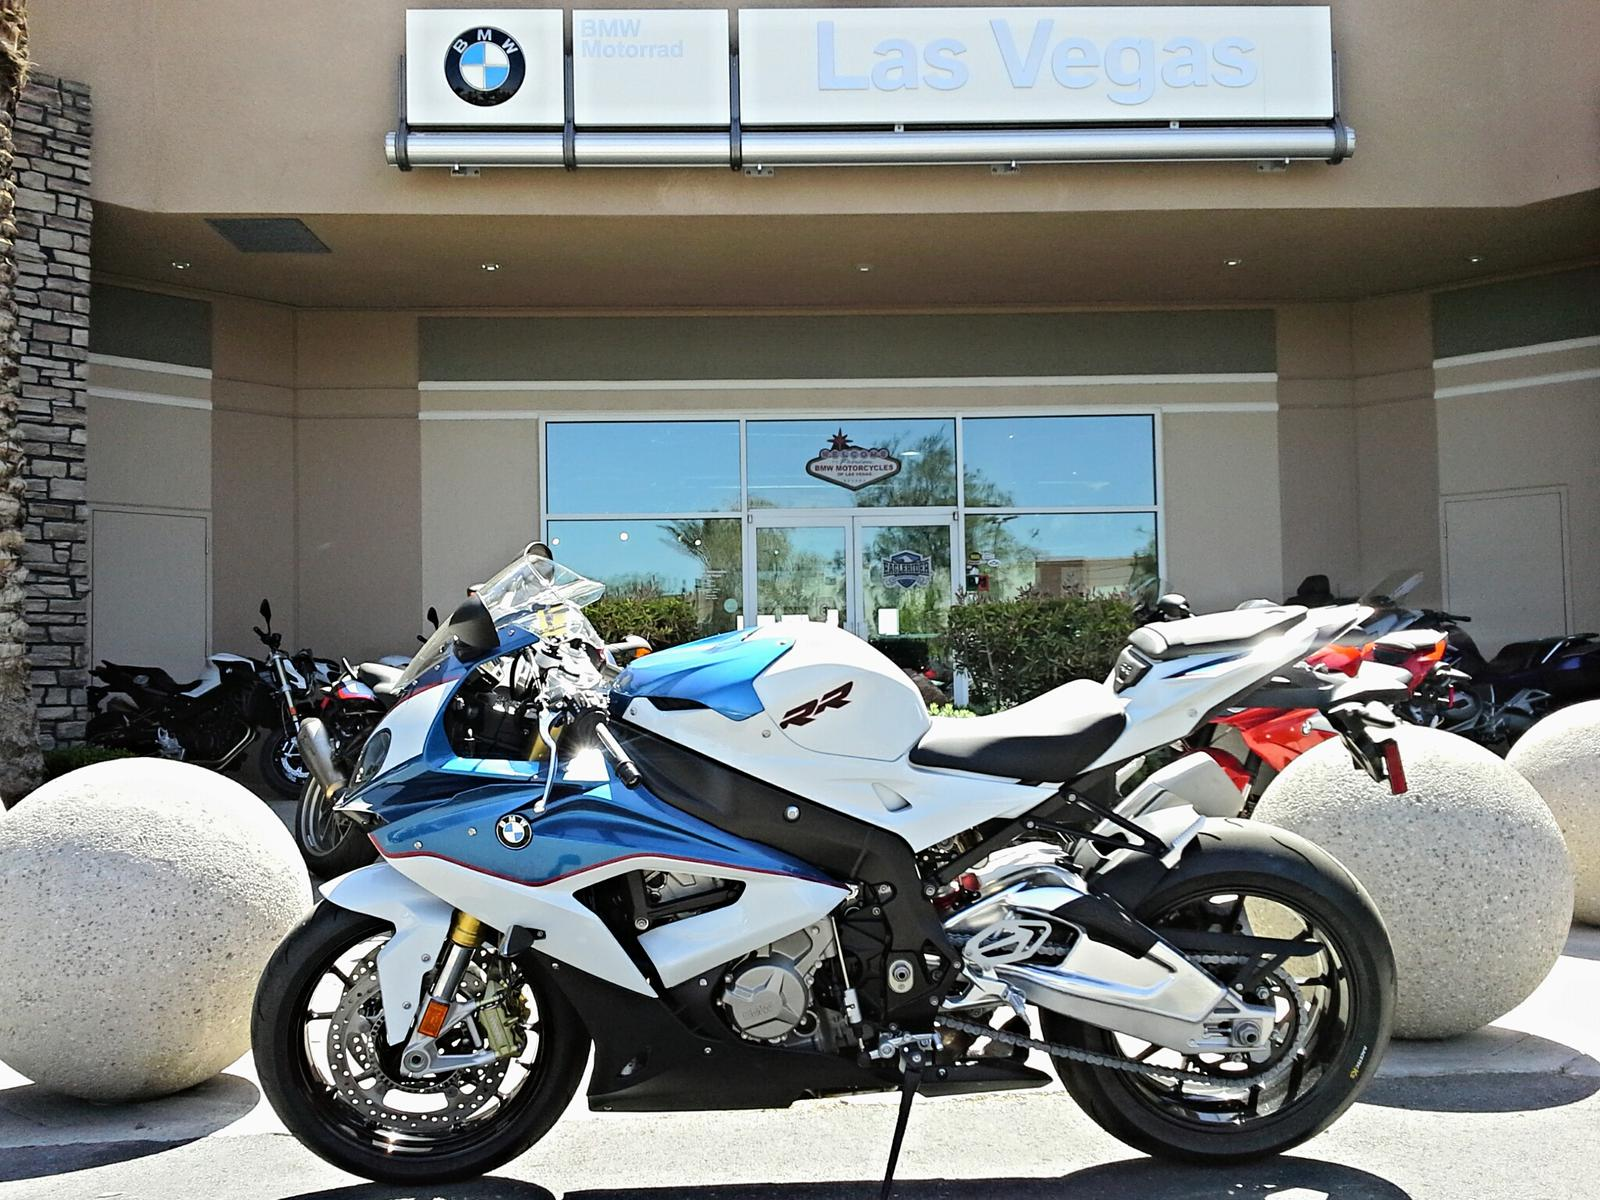 07_r1200r-1 | Motorcycles for sale, Yamaha v star, Bmw